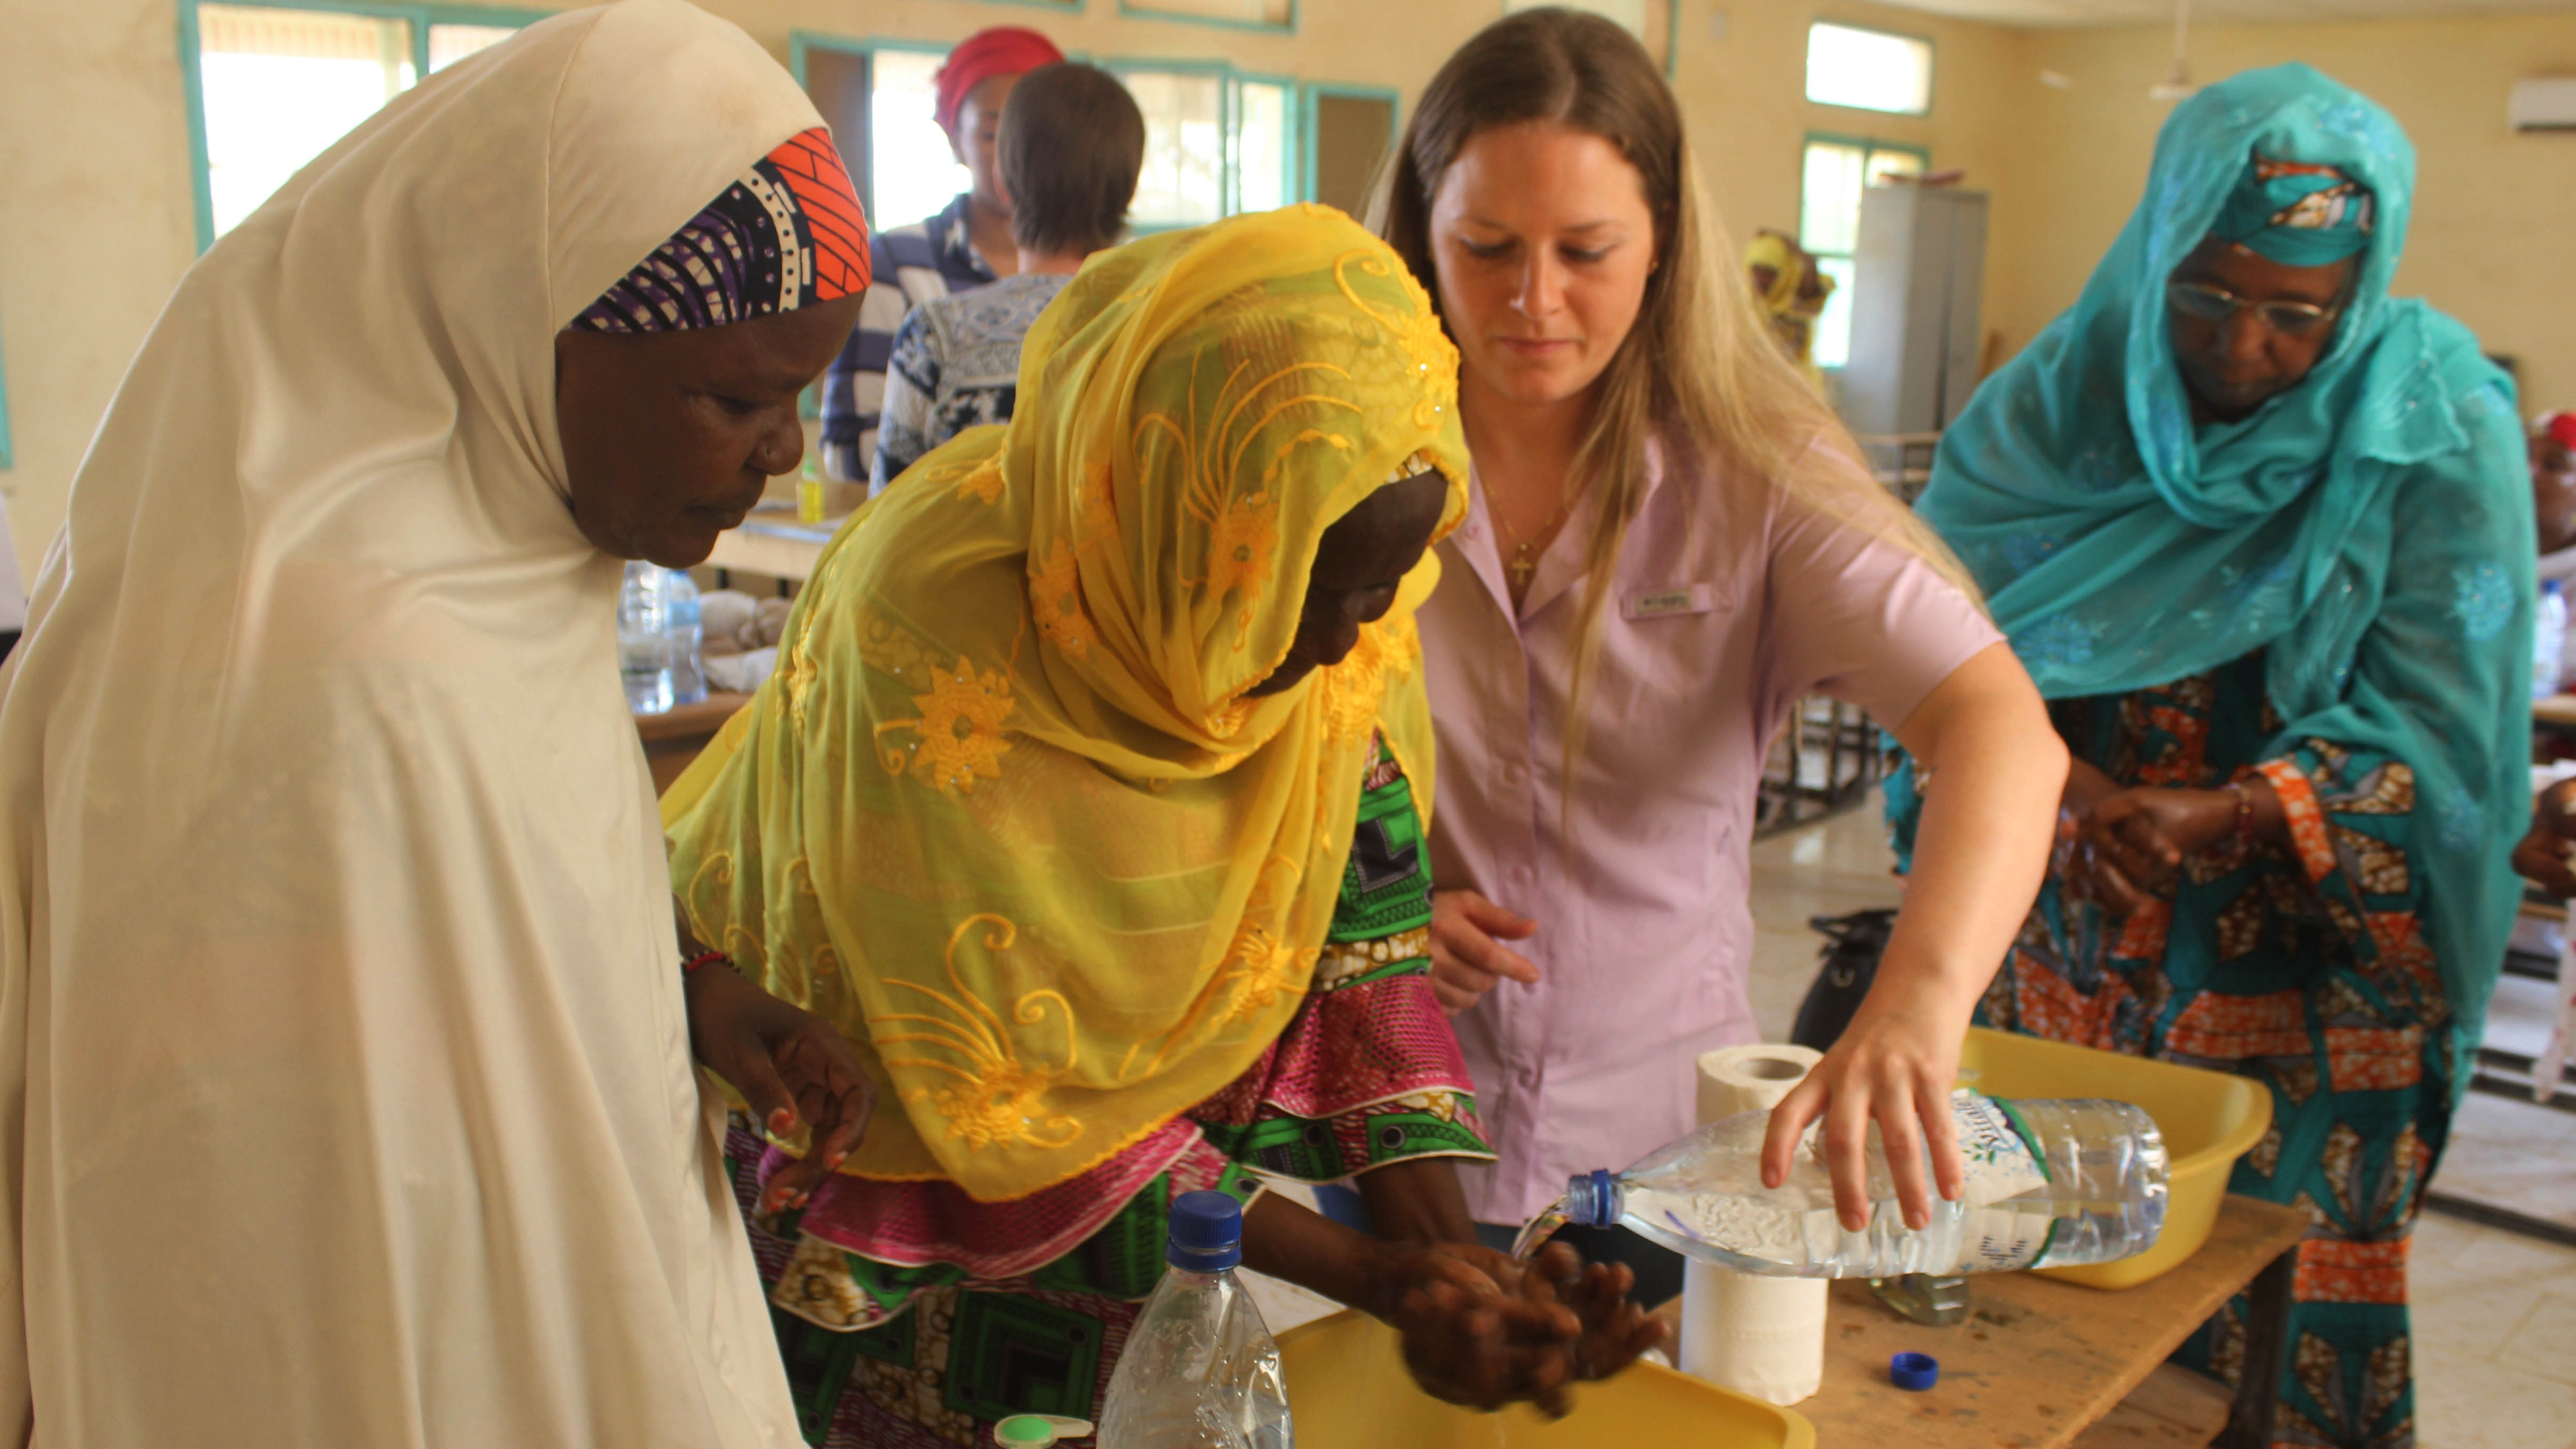 U.S. Air Force Tech. Sgt. Becky Smith (center right), 724th Expeditionary Air Base Squadron surgical technician, teaches basic hand washing methods during a women's hygiene class for the Association of Nigerien Women Against War on Aug. 14, 2017, in Agadez, Niger. Topics such as the importance of proper hygiene and how to combat communicable diseases were covered during the class. (Courtesy picture from the 724th Expeditionary Air Base Squadron medical section)